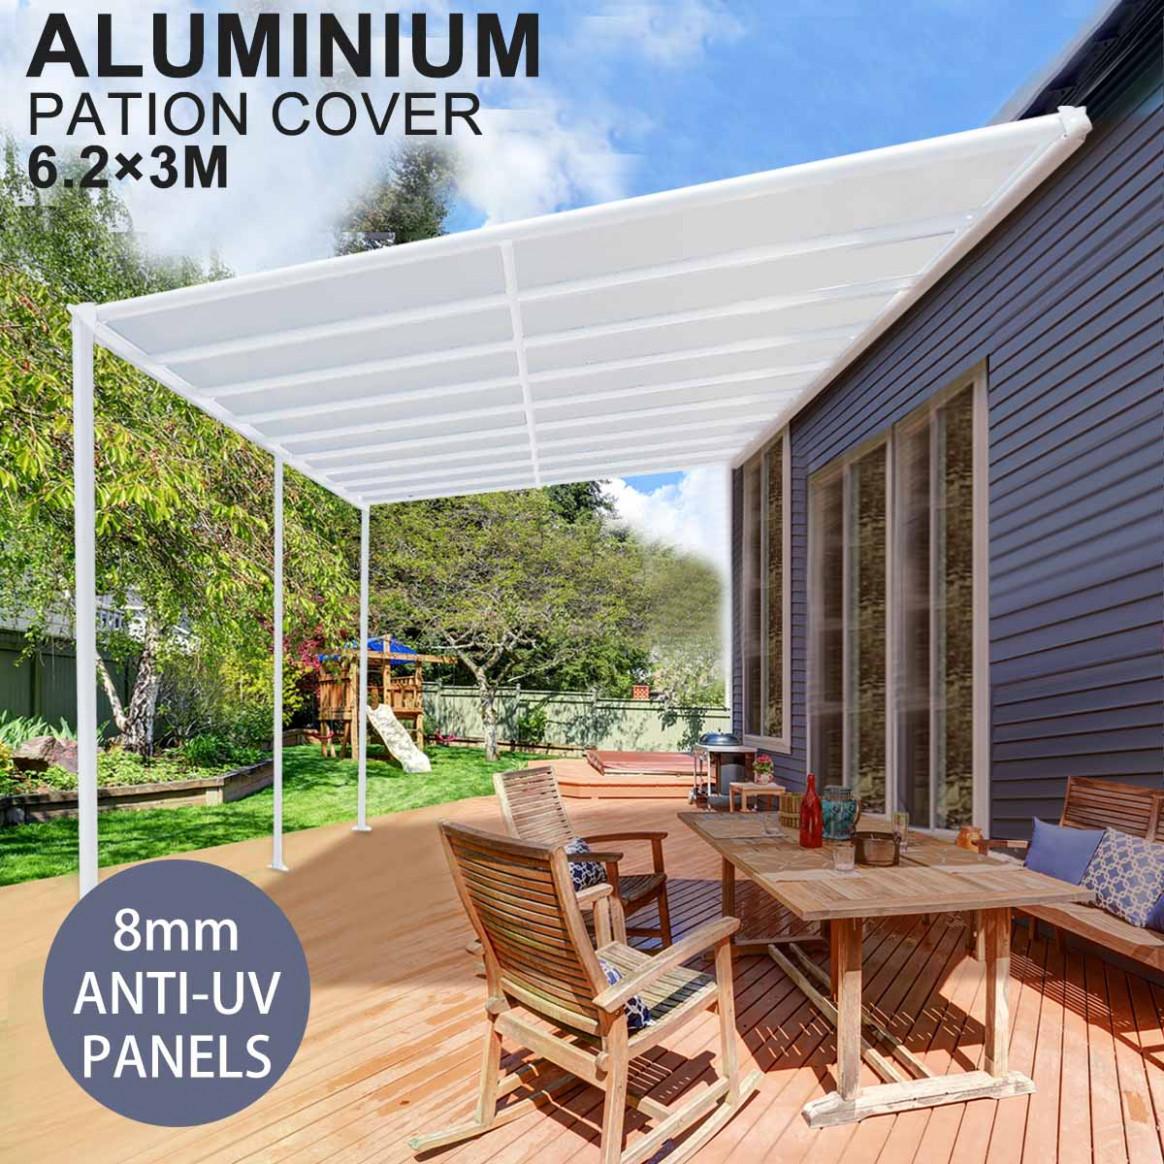 Details About DIY Pergola Roofing Patio Cover Kit 9